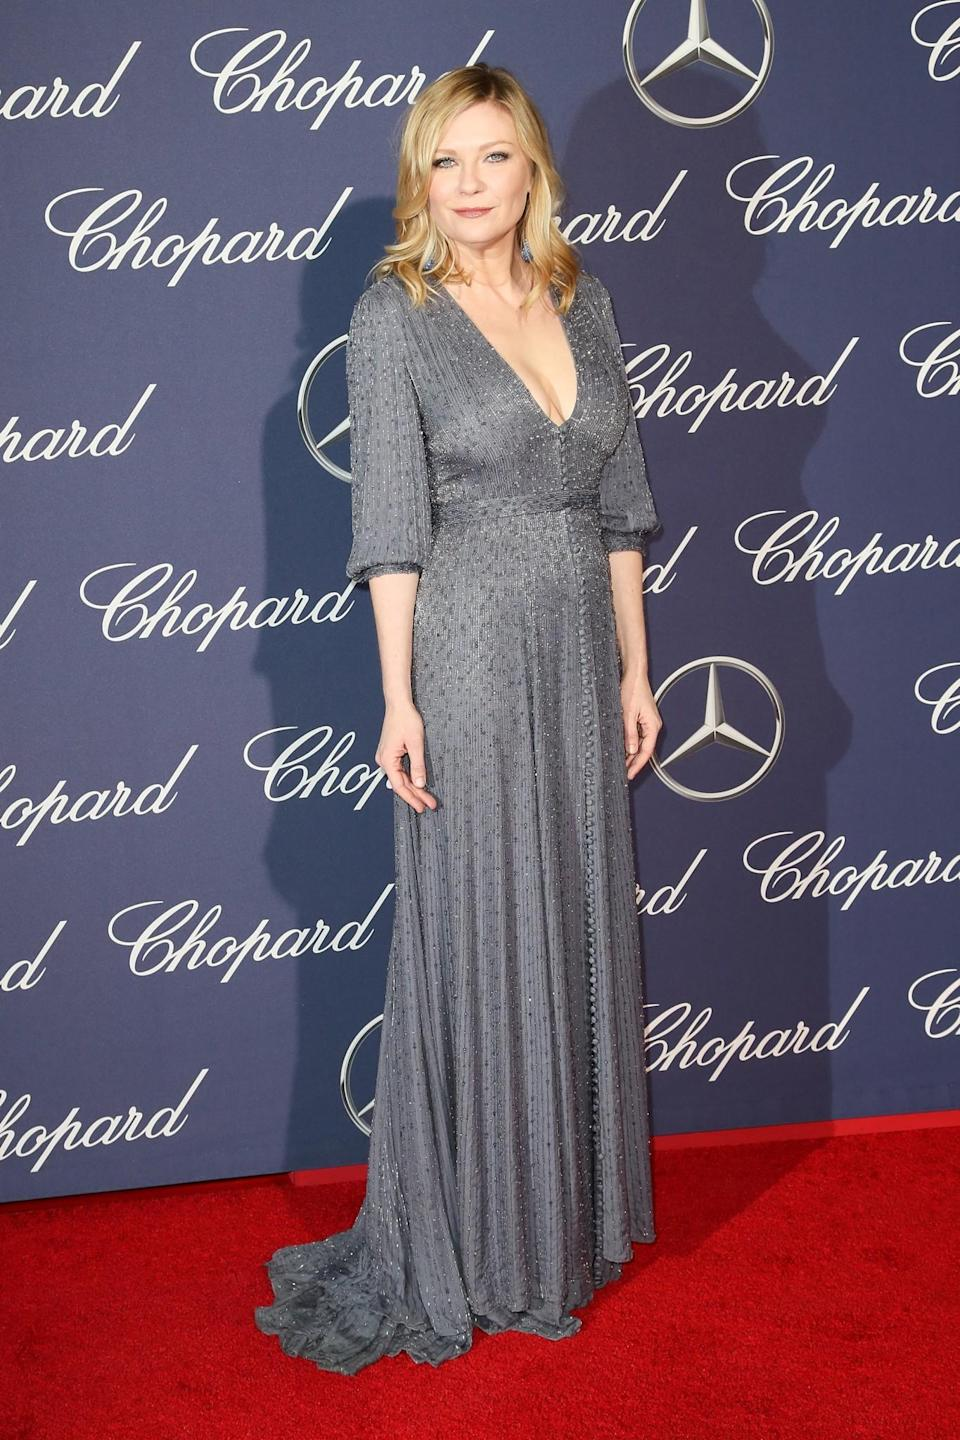 <p>Wearing a shimmering metallic Ralph & Russo dress, Kirsten showed off her sartorial prowess at the black tie event. [Photo: Getty] </p>